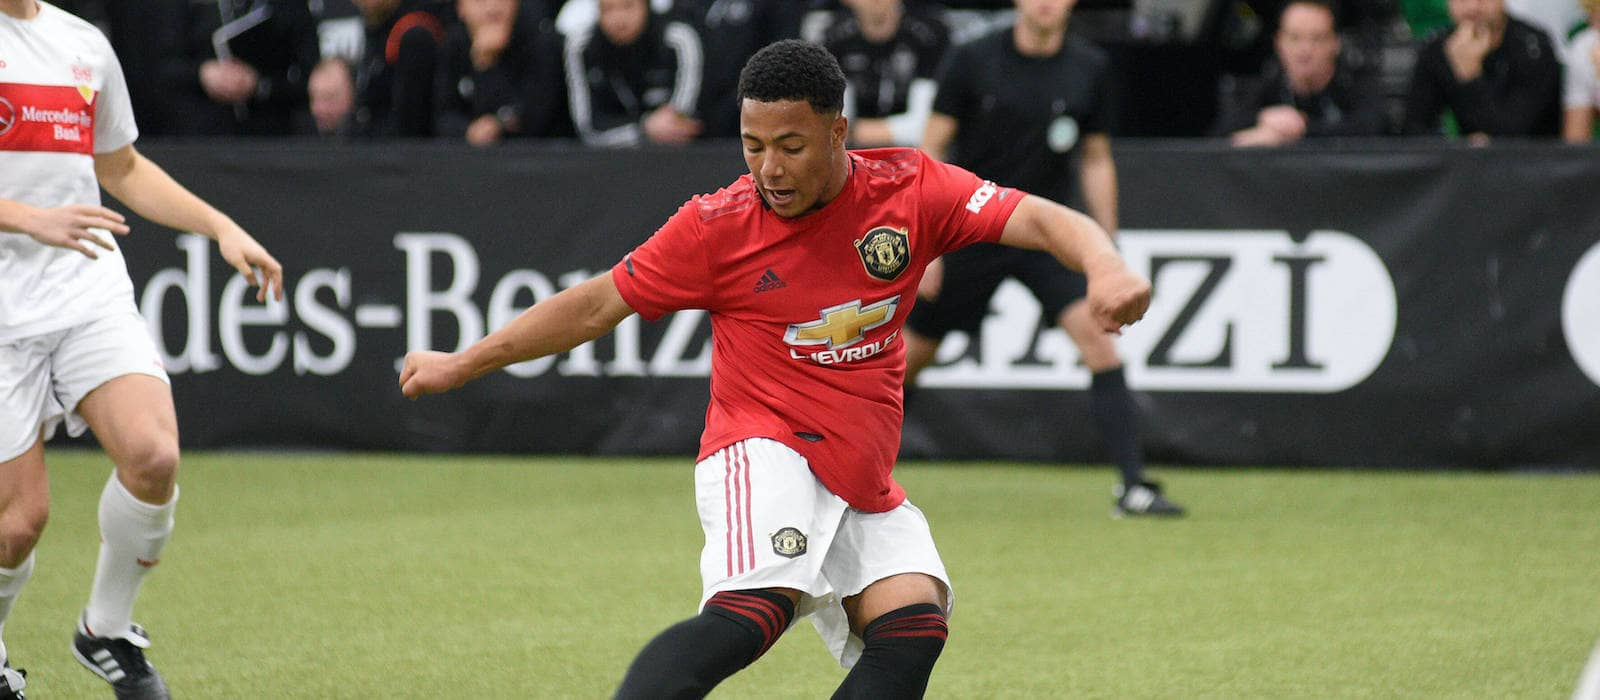 United wonderkid hits a superb hat-trick as Under 18s overwhelm Stoke